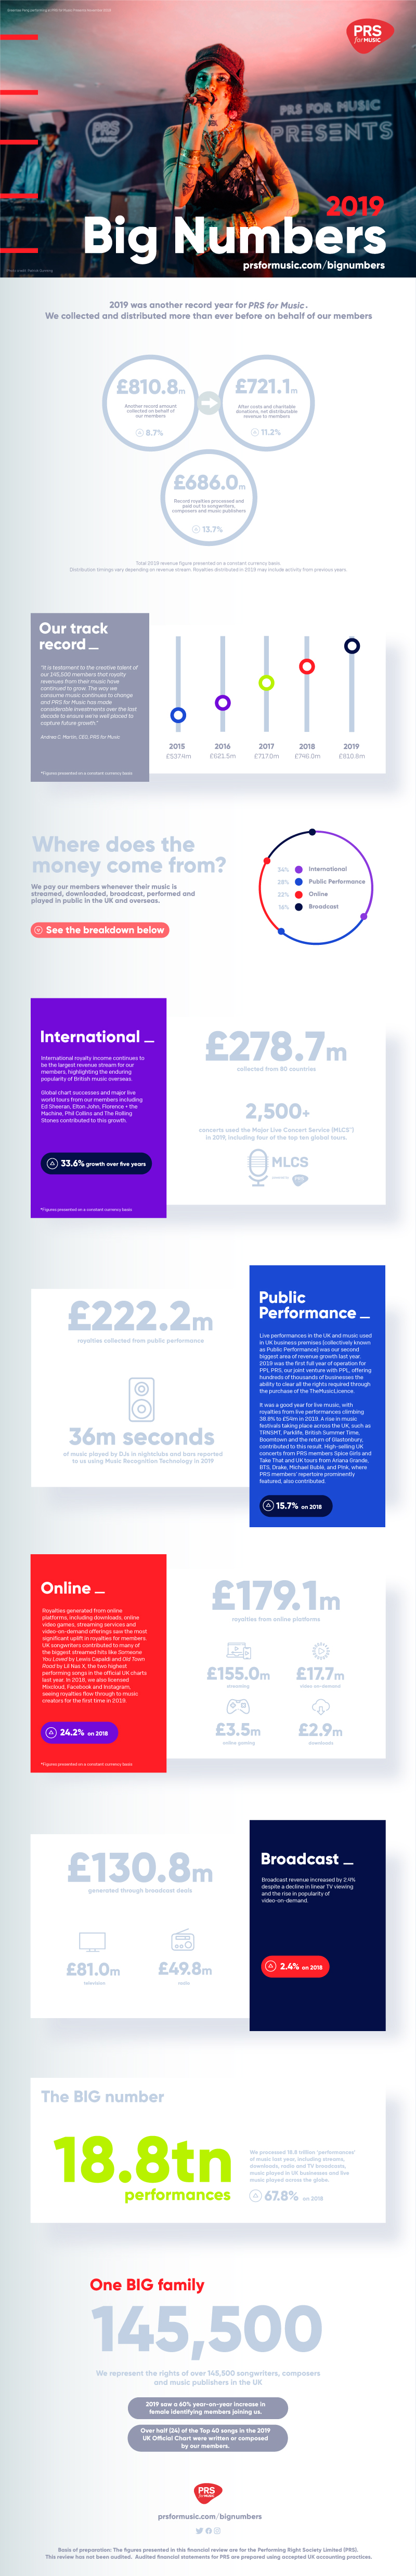 PRS Big Numbers infographic 2019 2